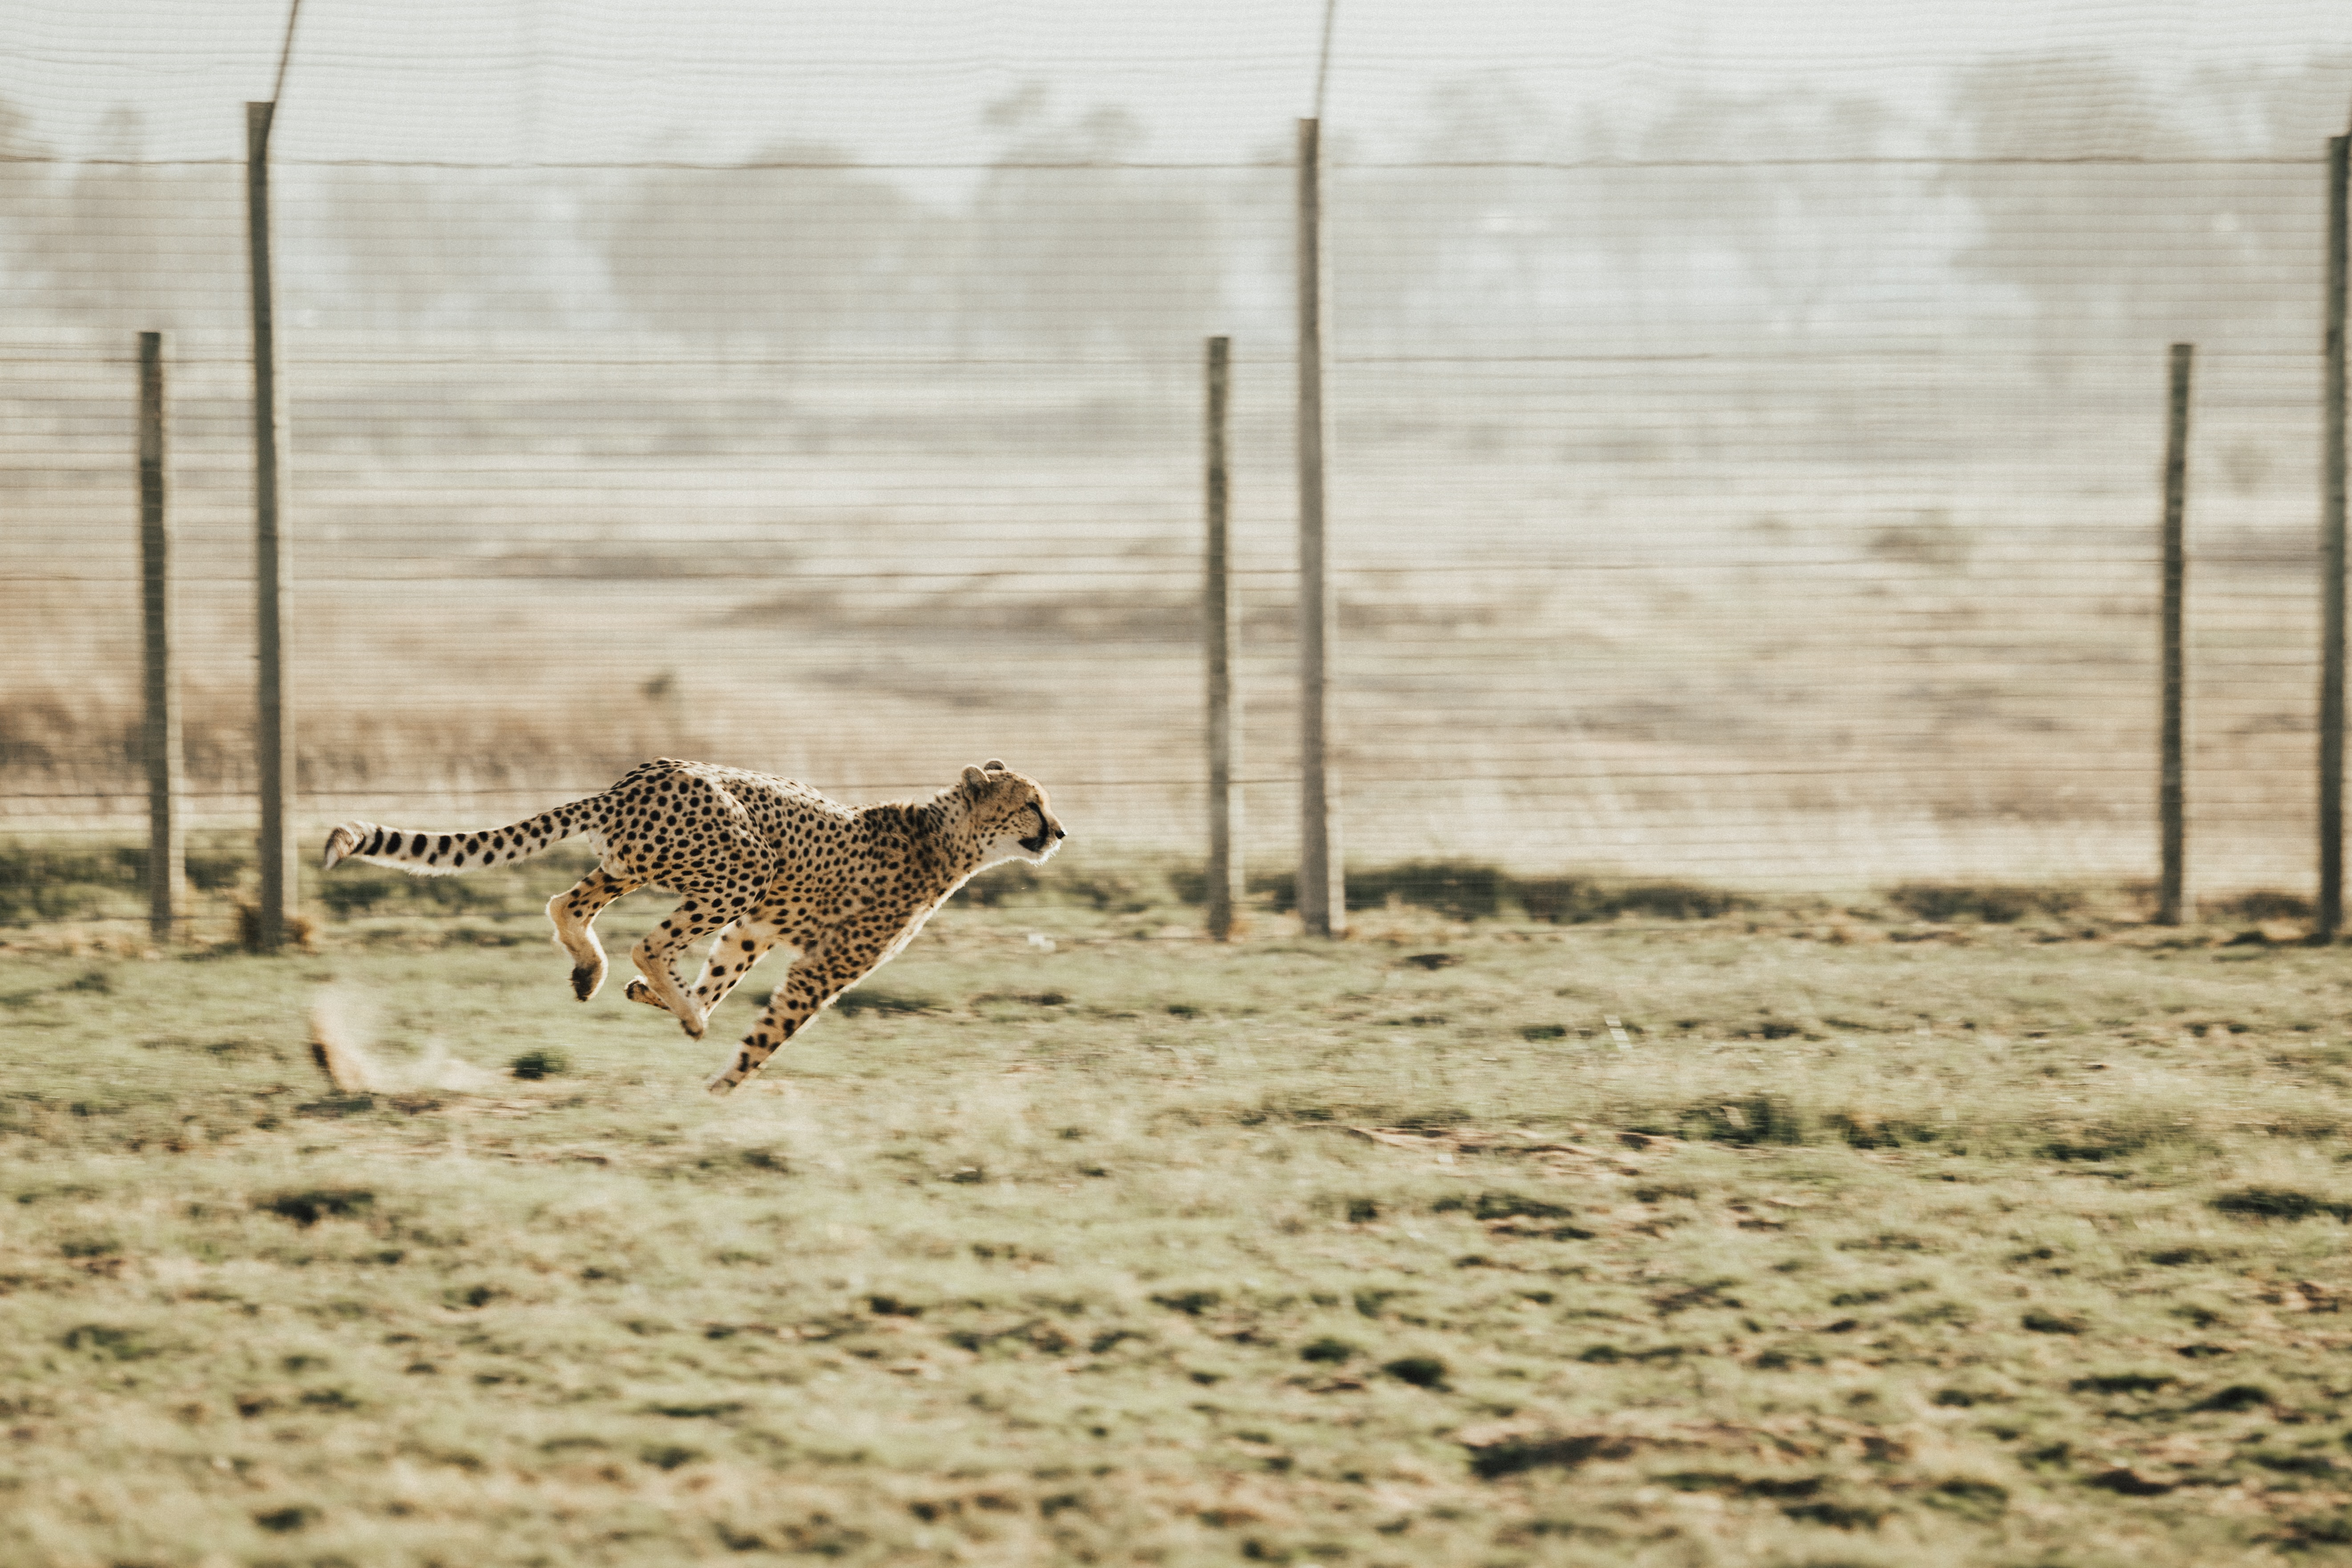 Cheetahs get fit outside by sprinting and doing cheetah things.